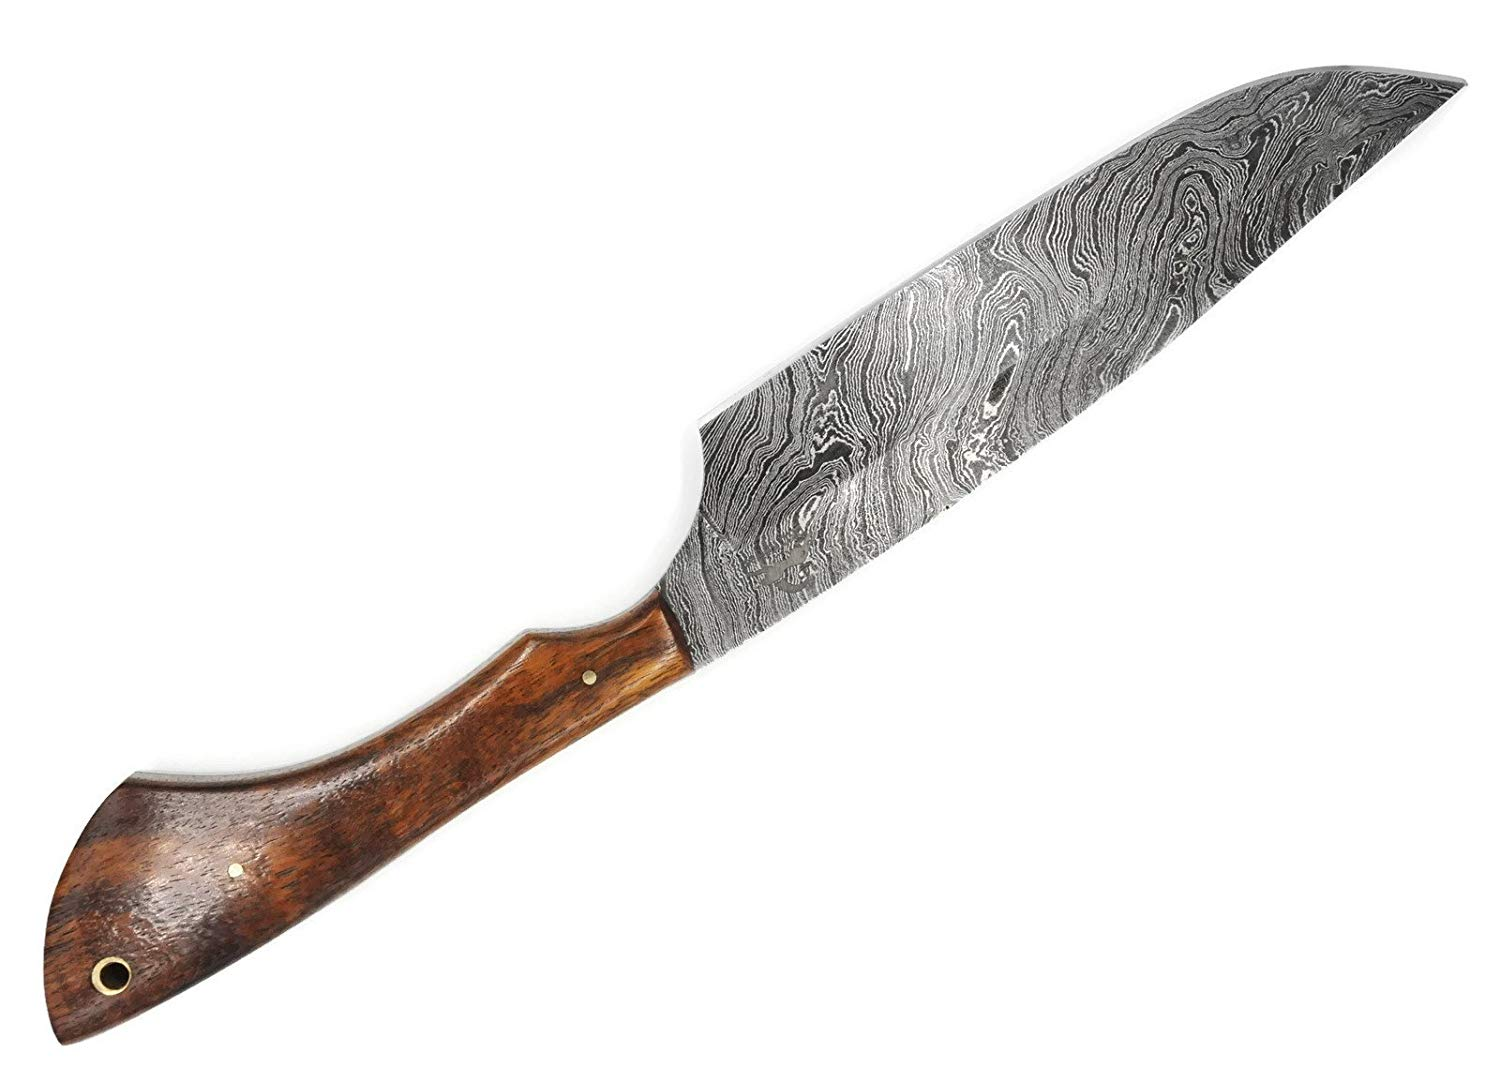 "DKC Knives DKC-1005 BERKELEY CHEF Knife Damascus Steel Blade 8"" Blade 13"" Overall 8 oz ND-Series"